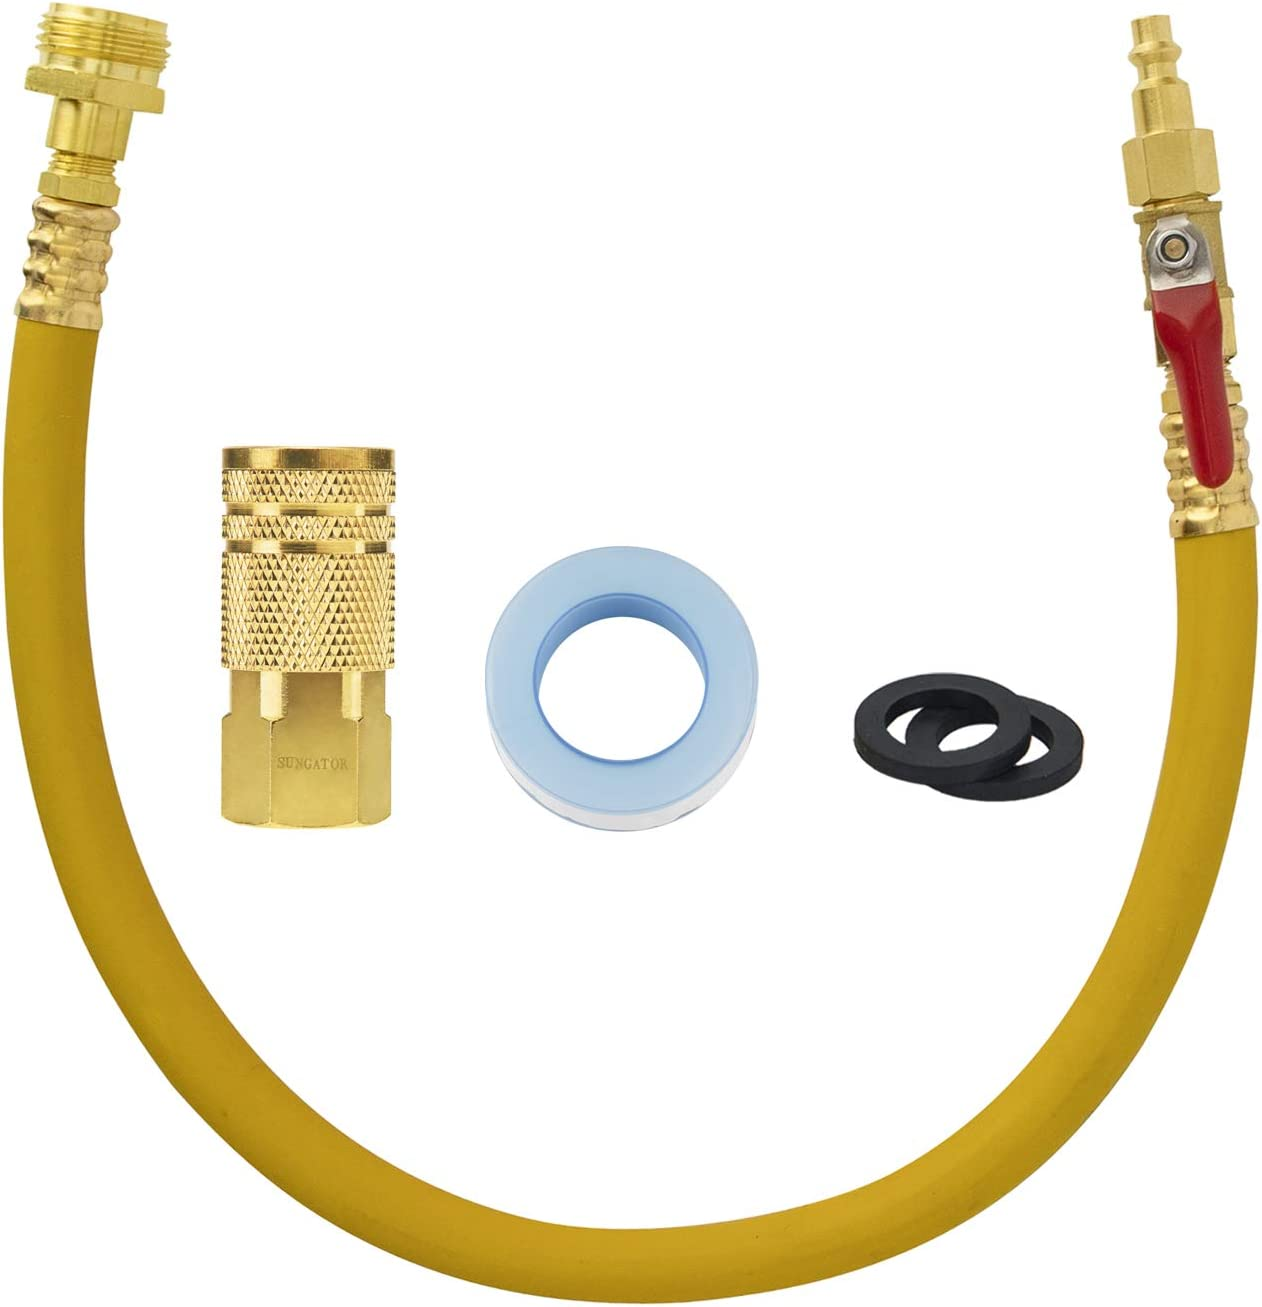 """SUNGATOR RV & Sprinkler Systems Winterize Blowout Adapter Kit with 20"""" Hose and Valve, Water Blow Out Plug with 6-Ball Air Quick Connector for Irrigation Systems, Camper, Trailers, Boat, Motorhome"""